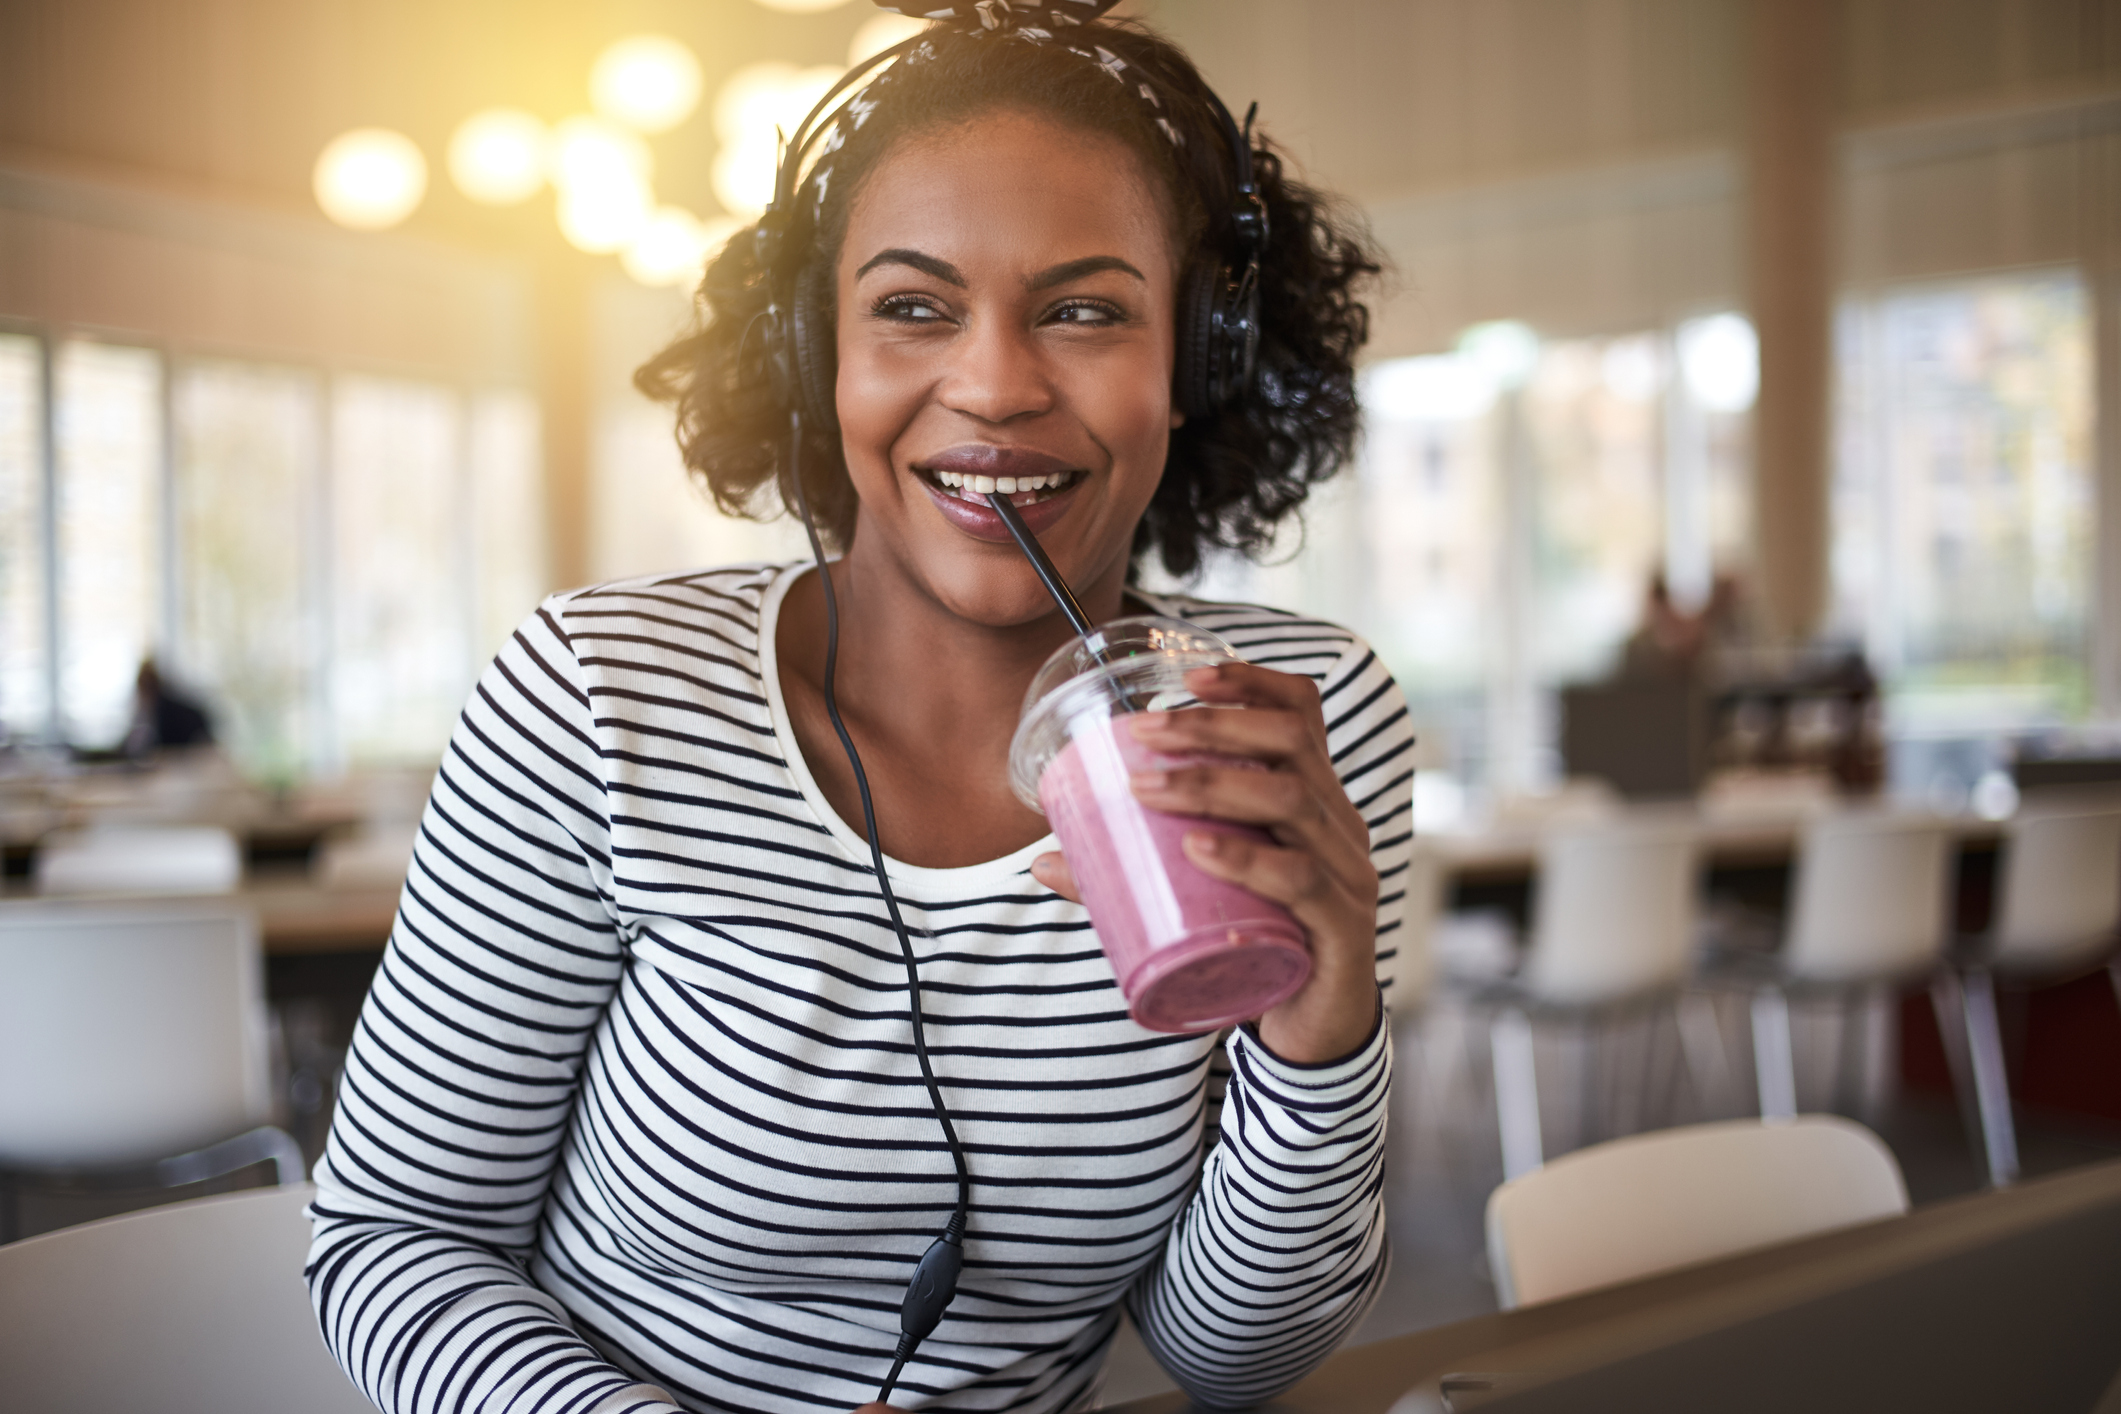 Smiling young college student drinking a smoothie between classes